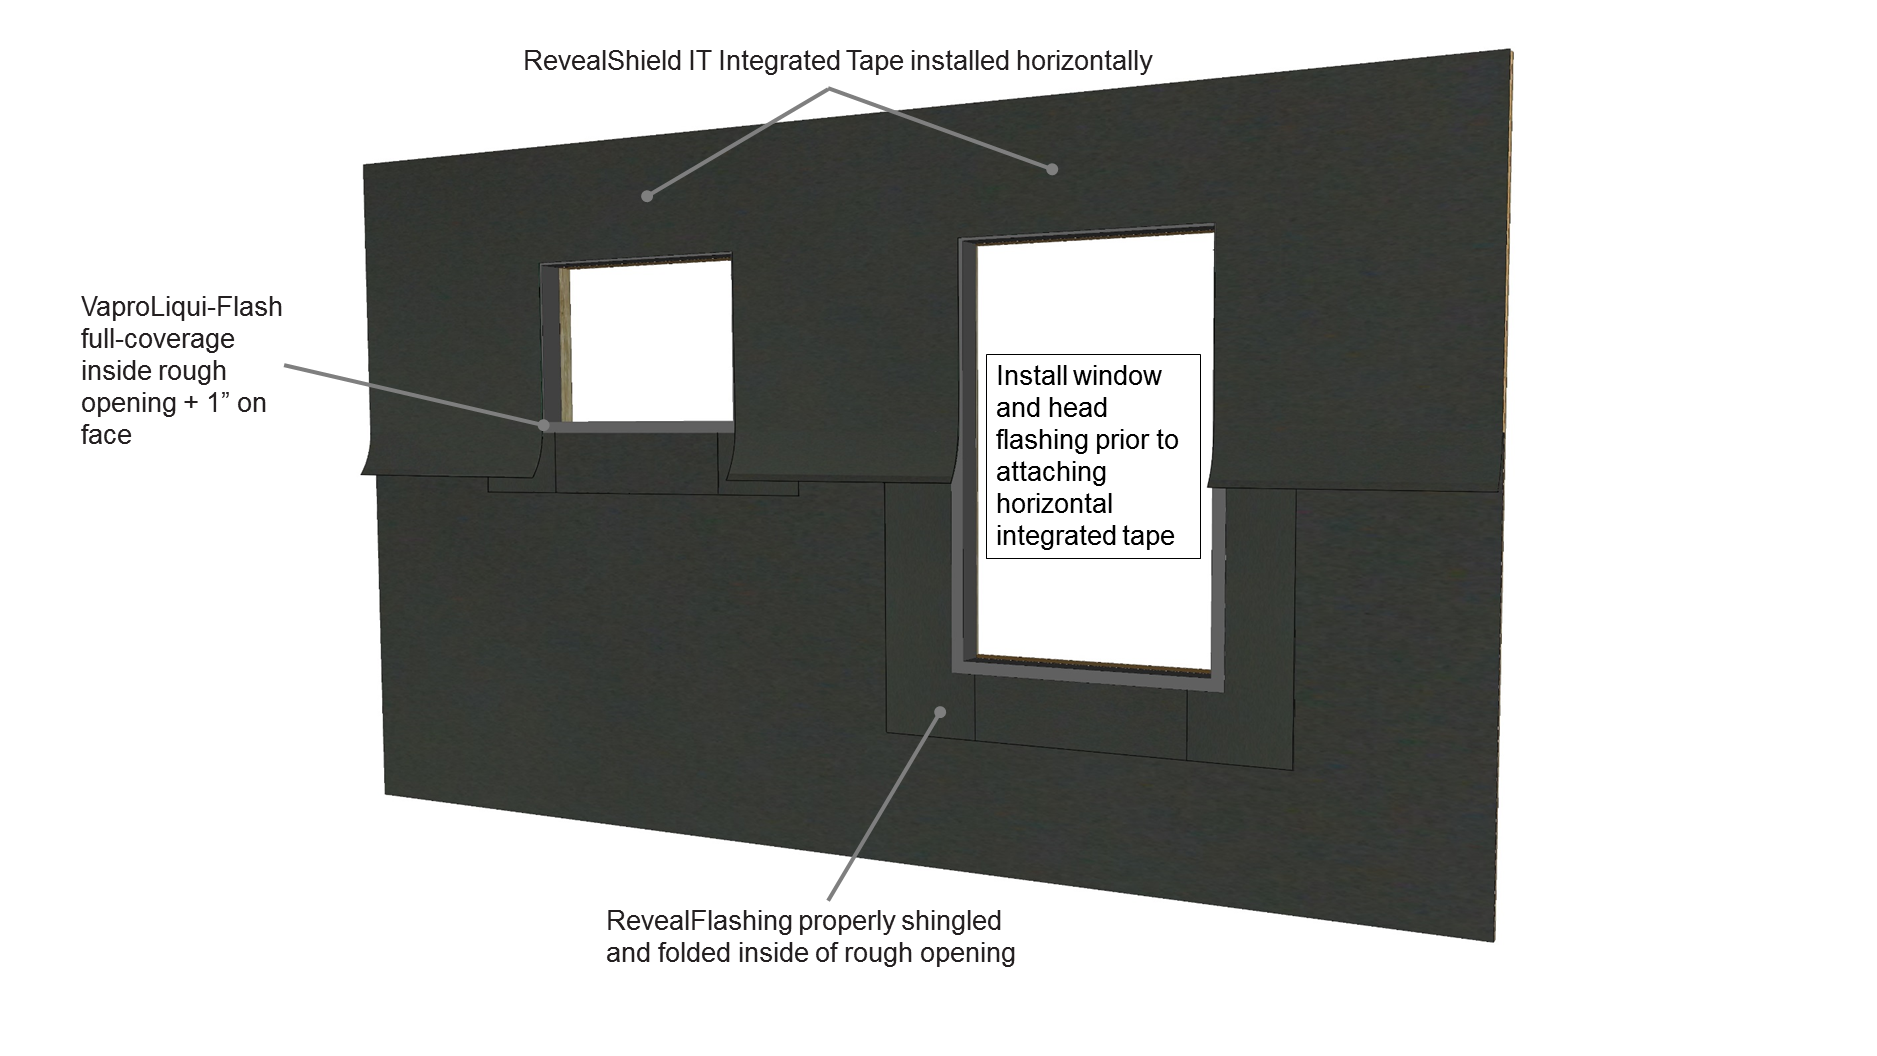 VS 164 RevealShield ROSequence 062816 image callout